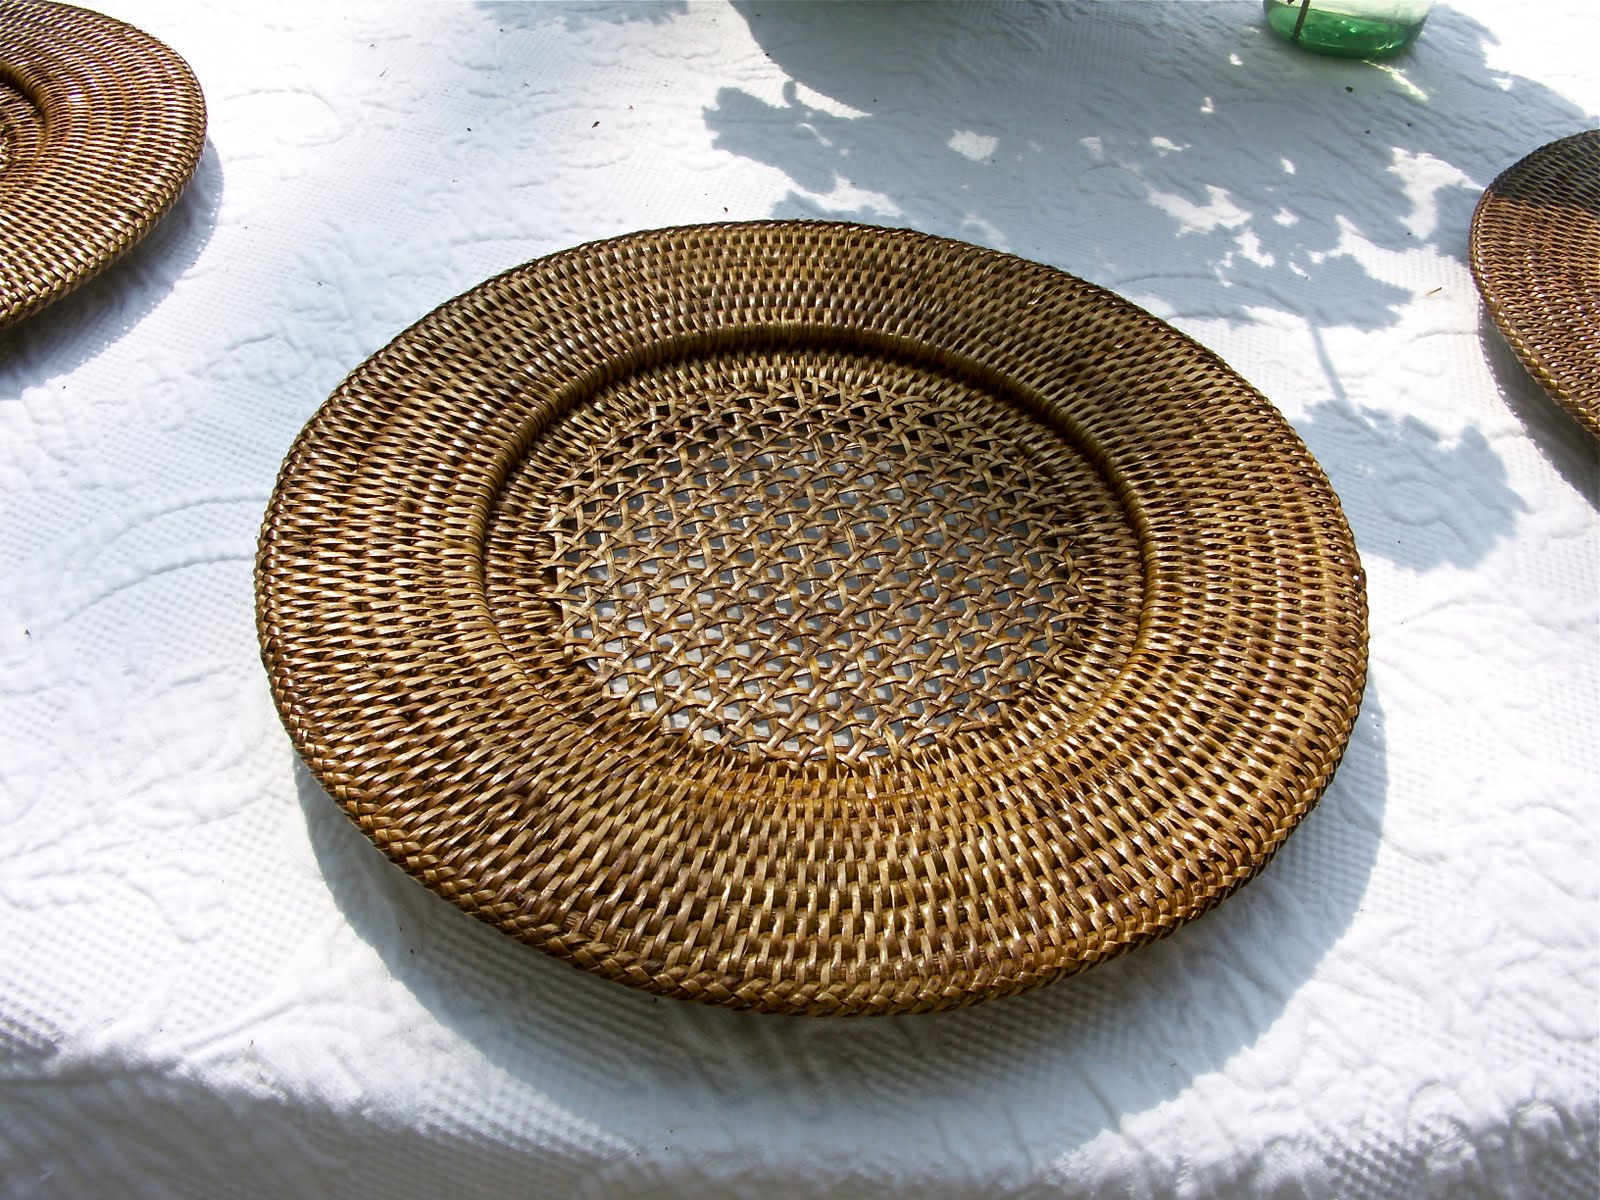 The Caspari Rattan Chargers Also Added An Organic Texture That Sings Of  Summer And Barbecue.